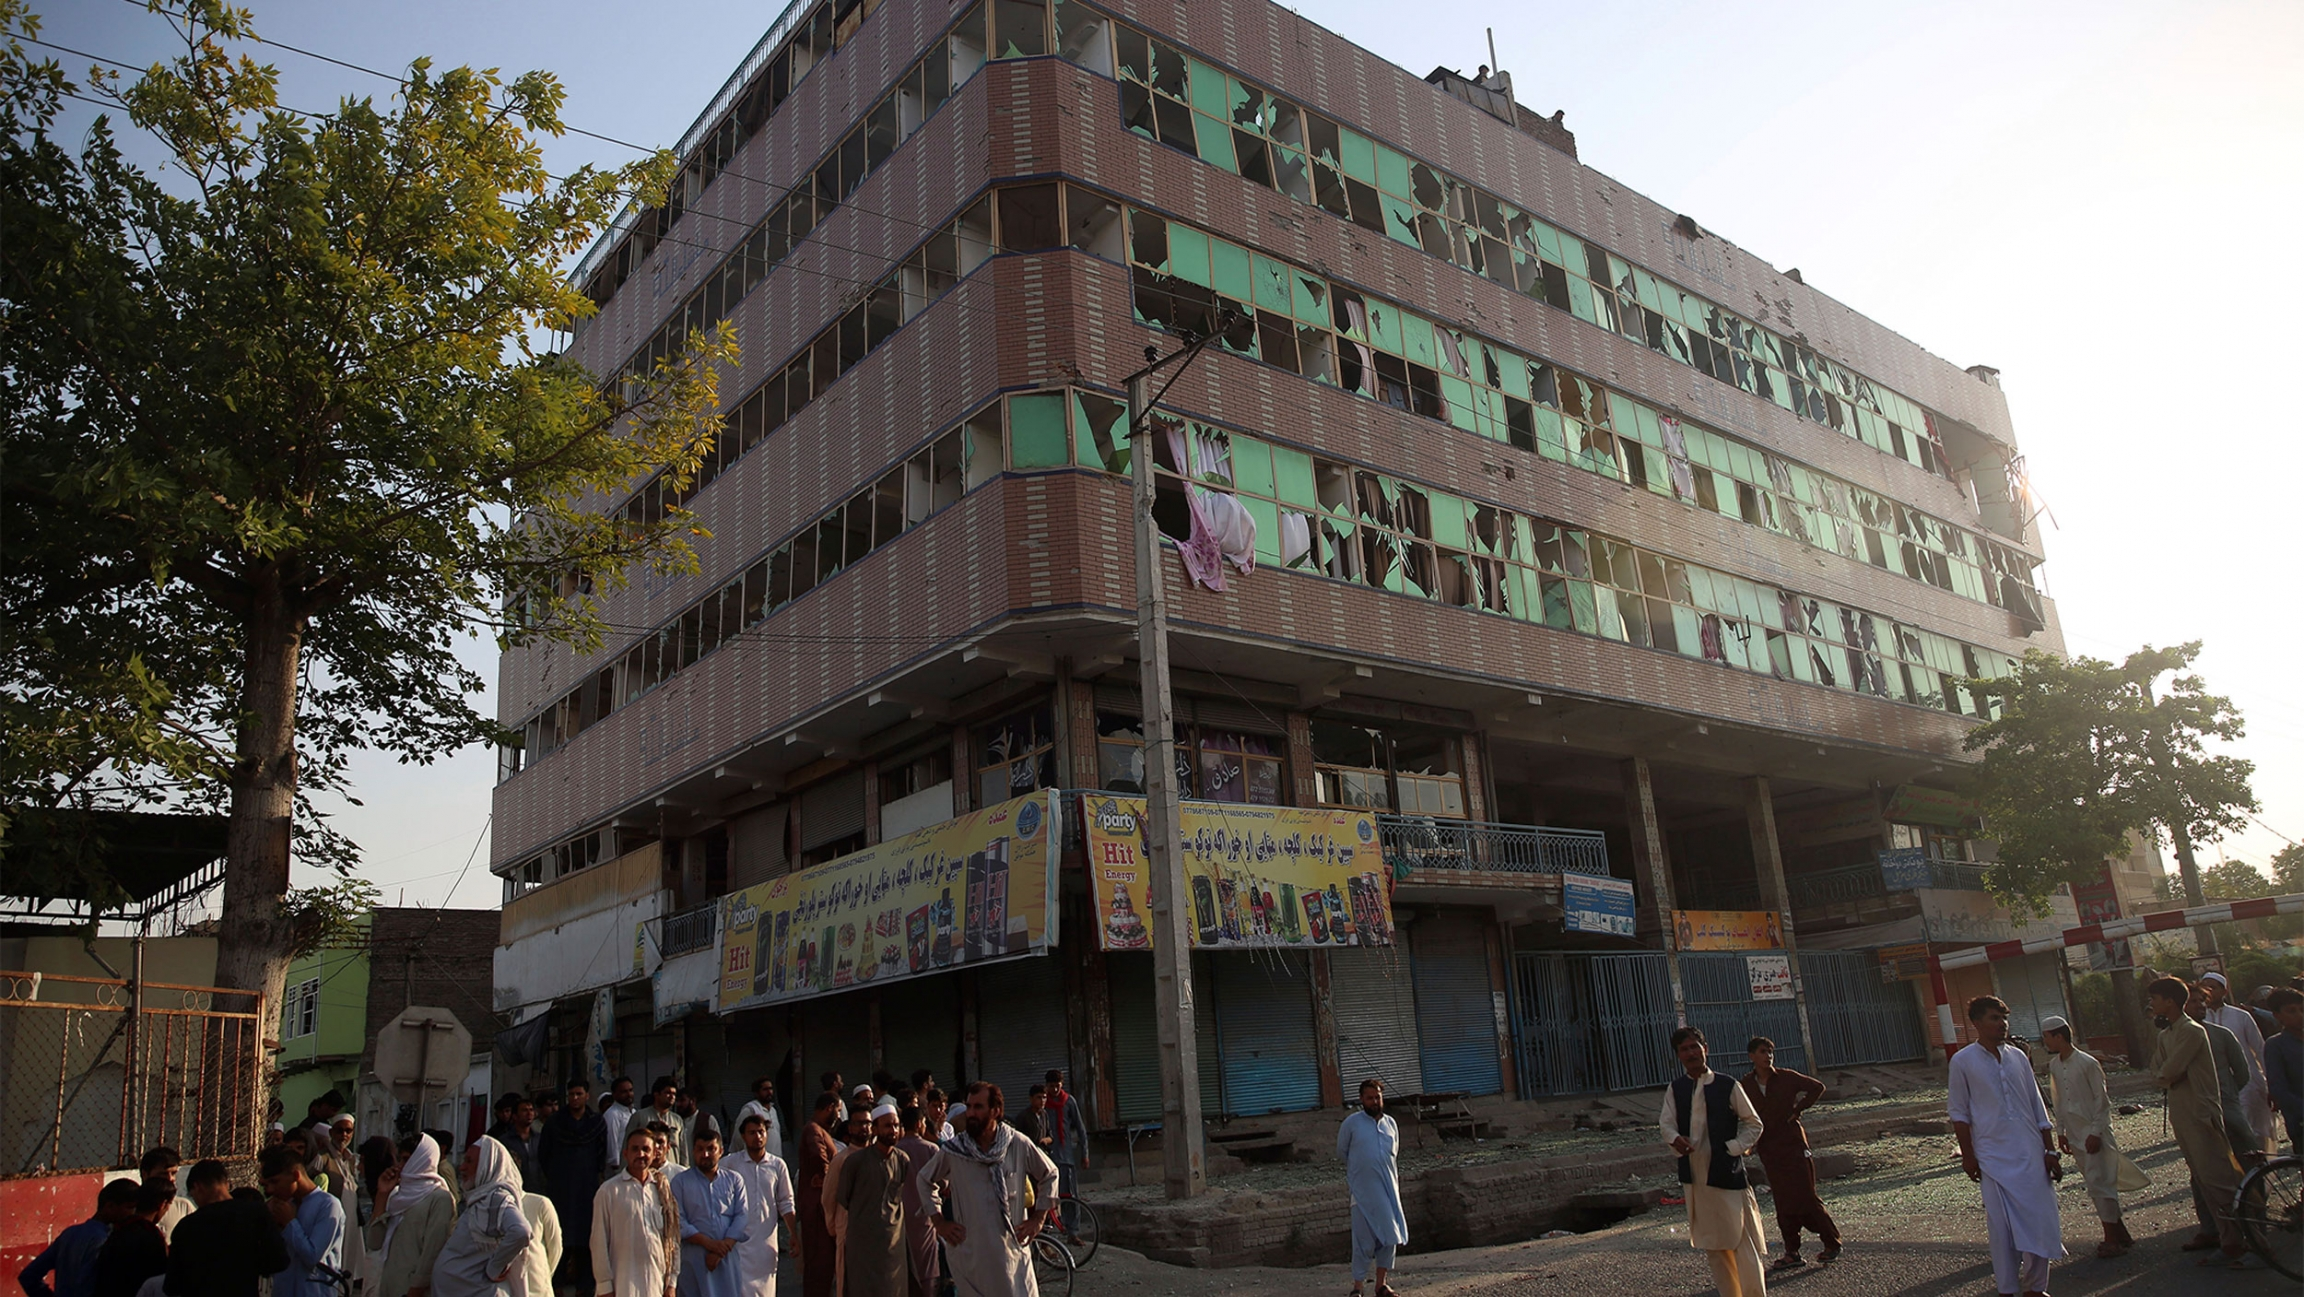 Afghan people are seen near the building where insurgents were hiding during an attack to the prison in the city of Jalalabad, east of Kabul, Afghanistan.